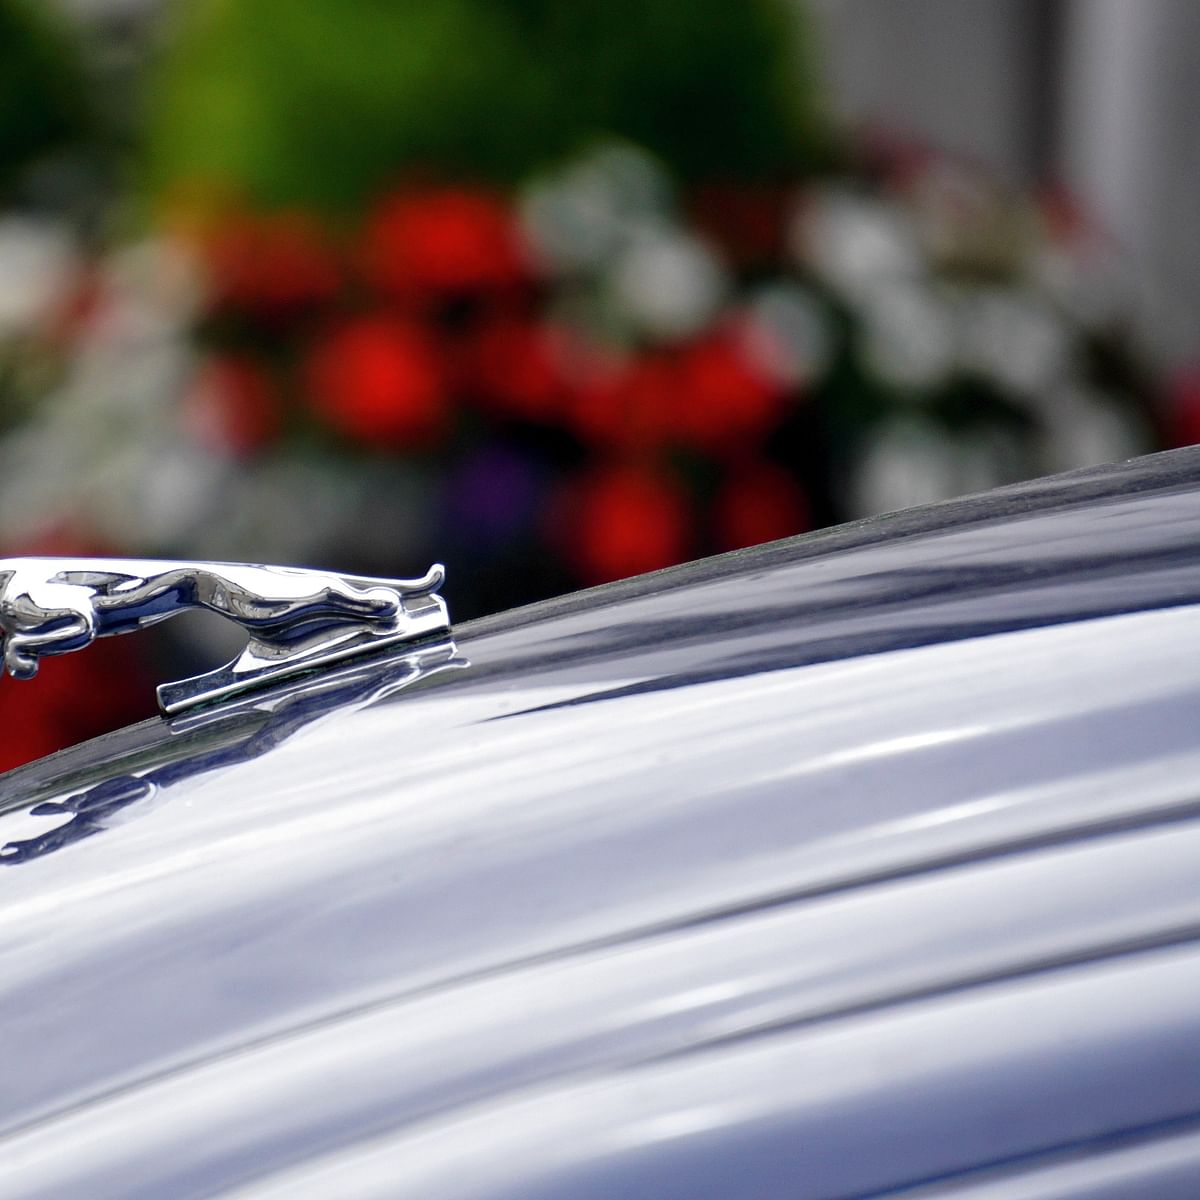 Aim to be world's most profitable luxury carmaker: JLR CEO